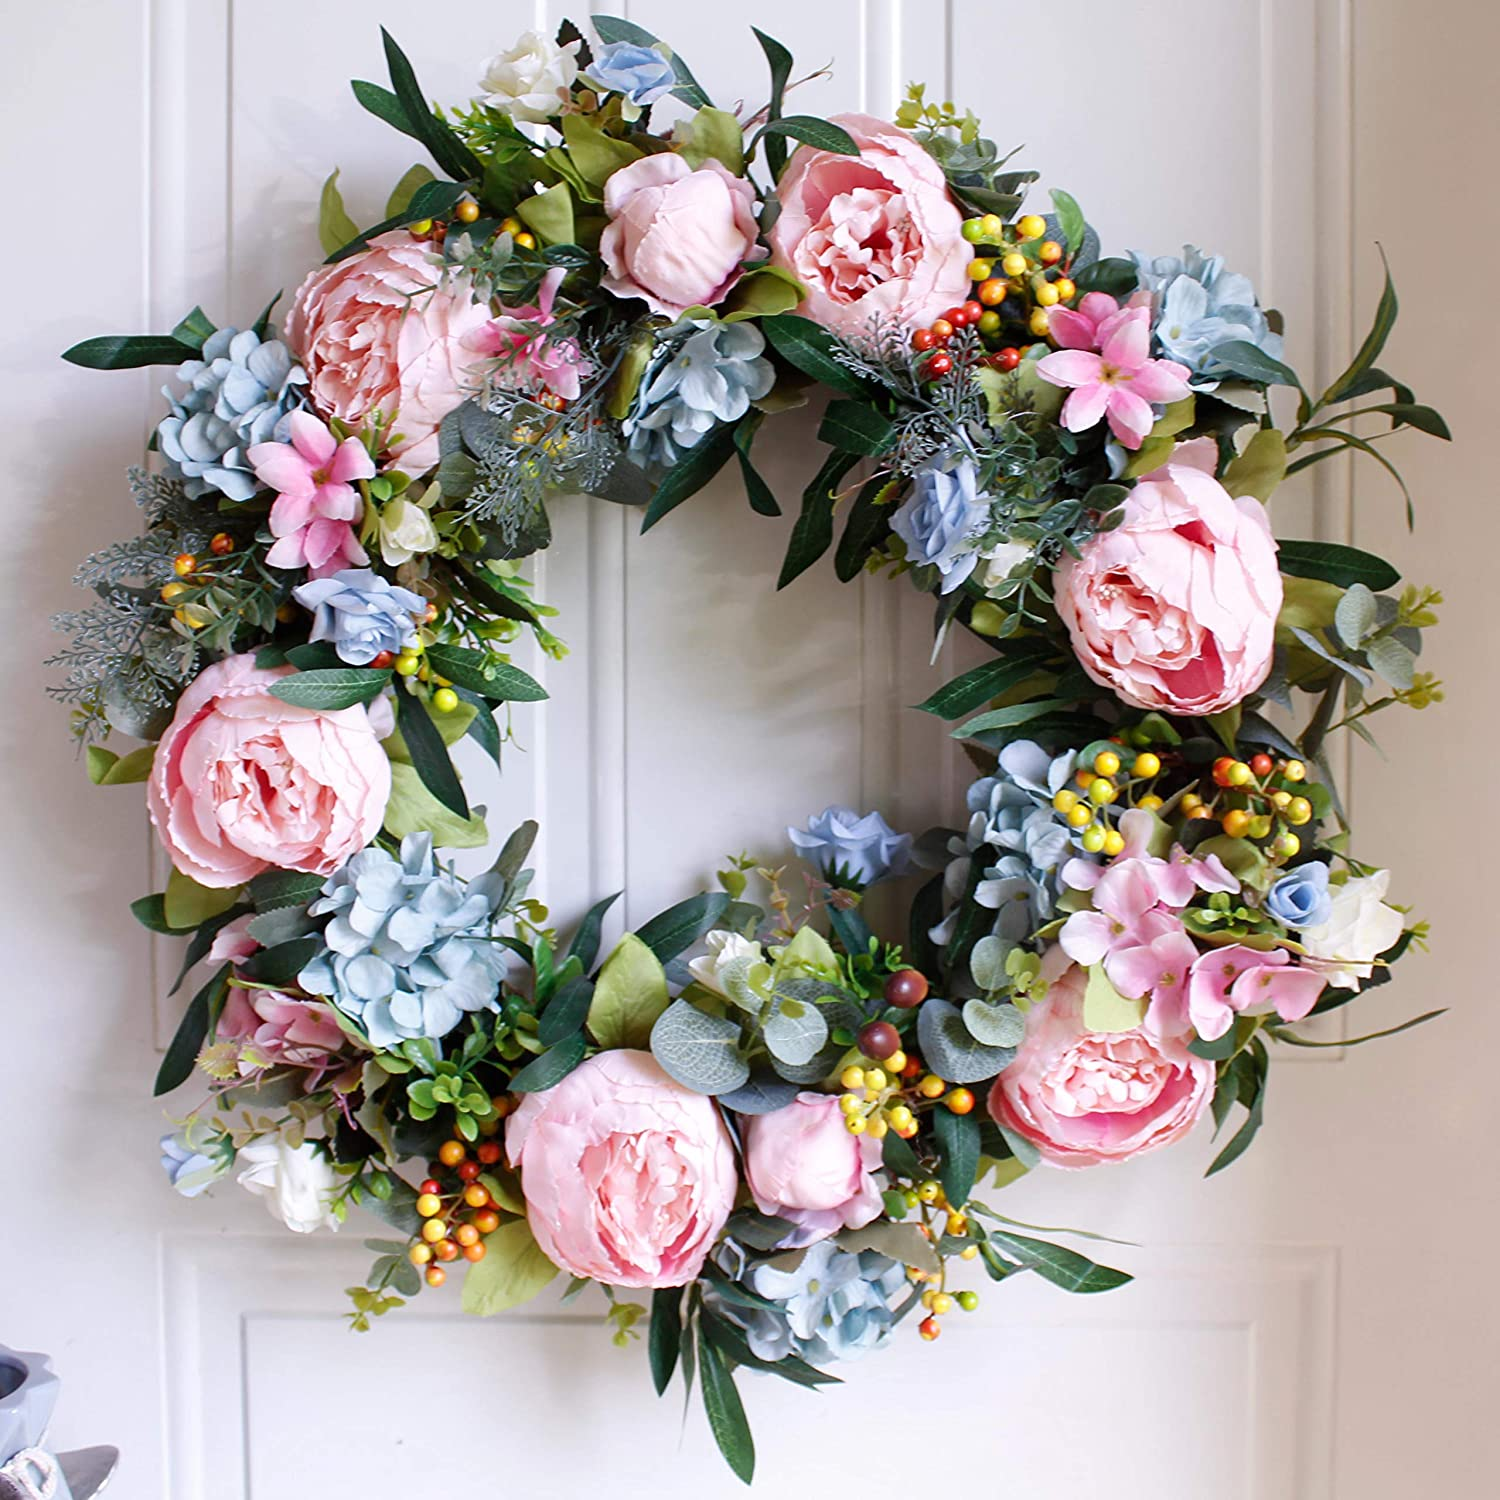 """Dseap Wreath - 22"""", Peony  Large Rustic Farmhouse Decorative Artificial Flower Wreath, Faux Floral Wreath for Front Door Window Wedding Outdoor Indoor - Round, Pink & bluee"""